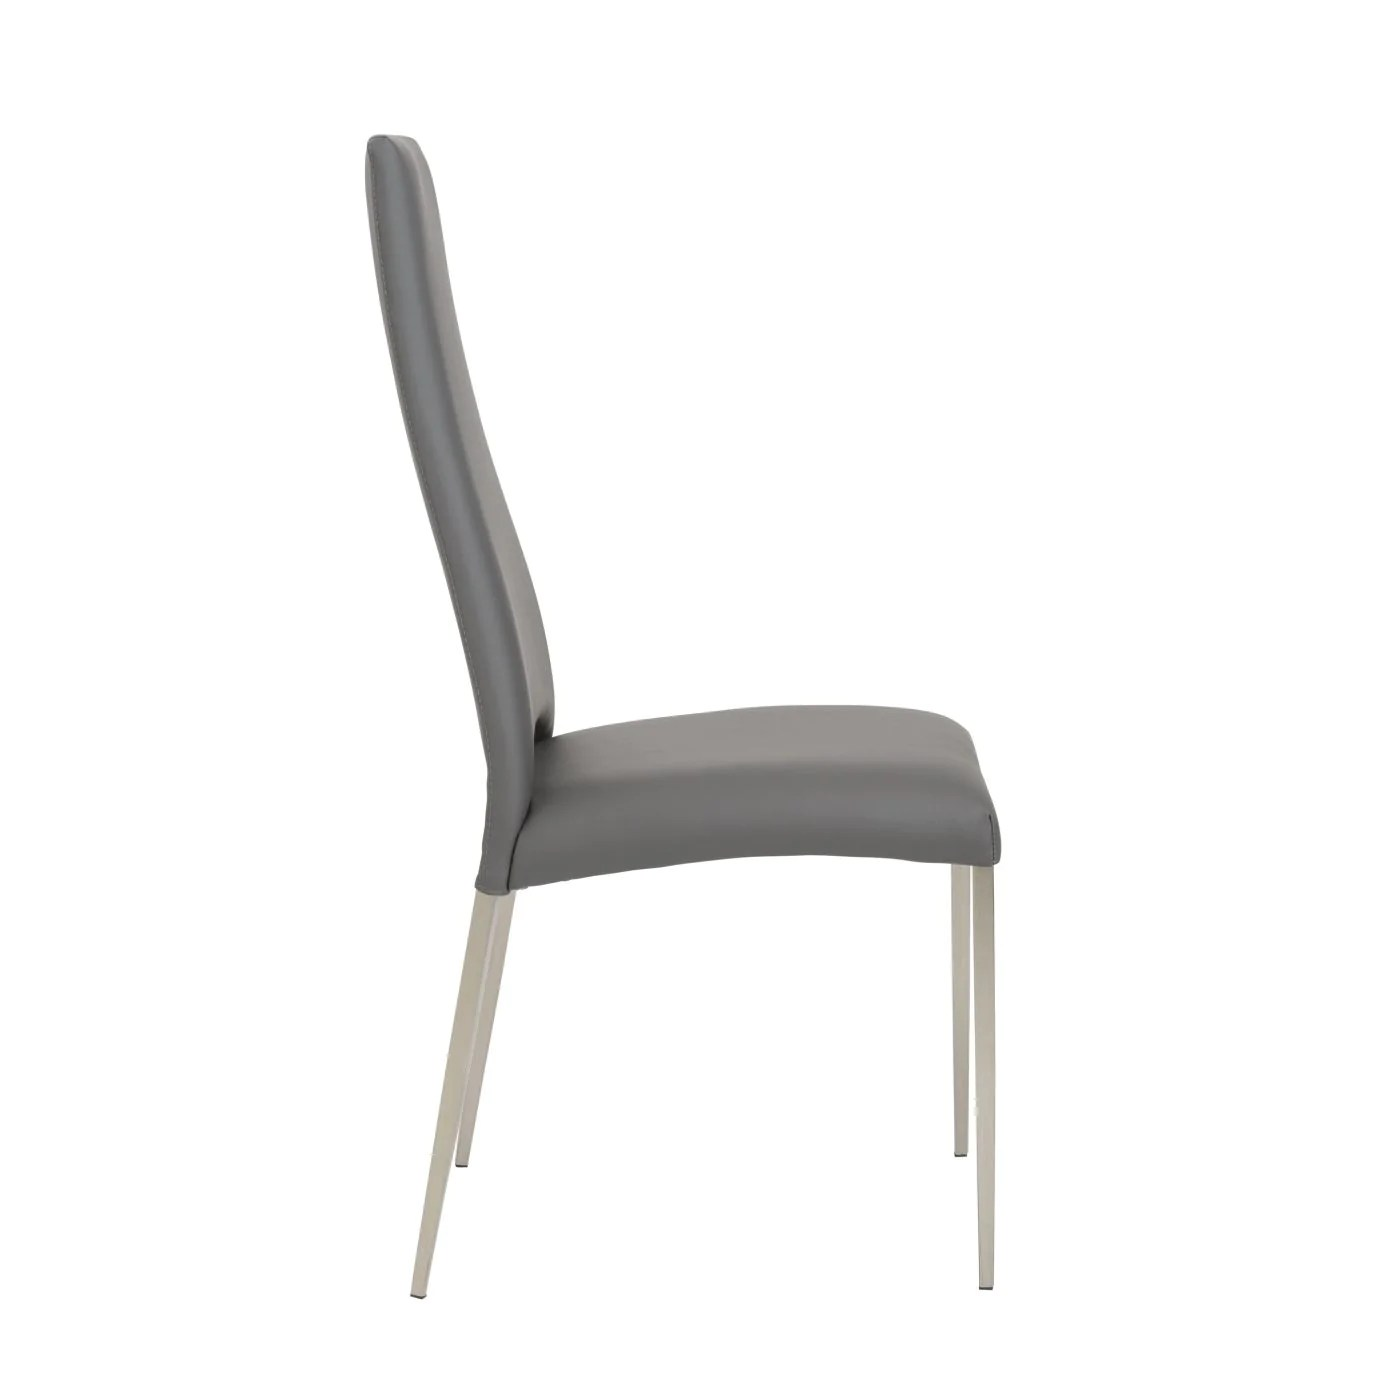 dining chairs with stainless steel legs swinging chair for bedroom euro style tara in gray leatherette brushed set of 4